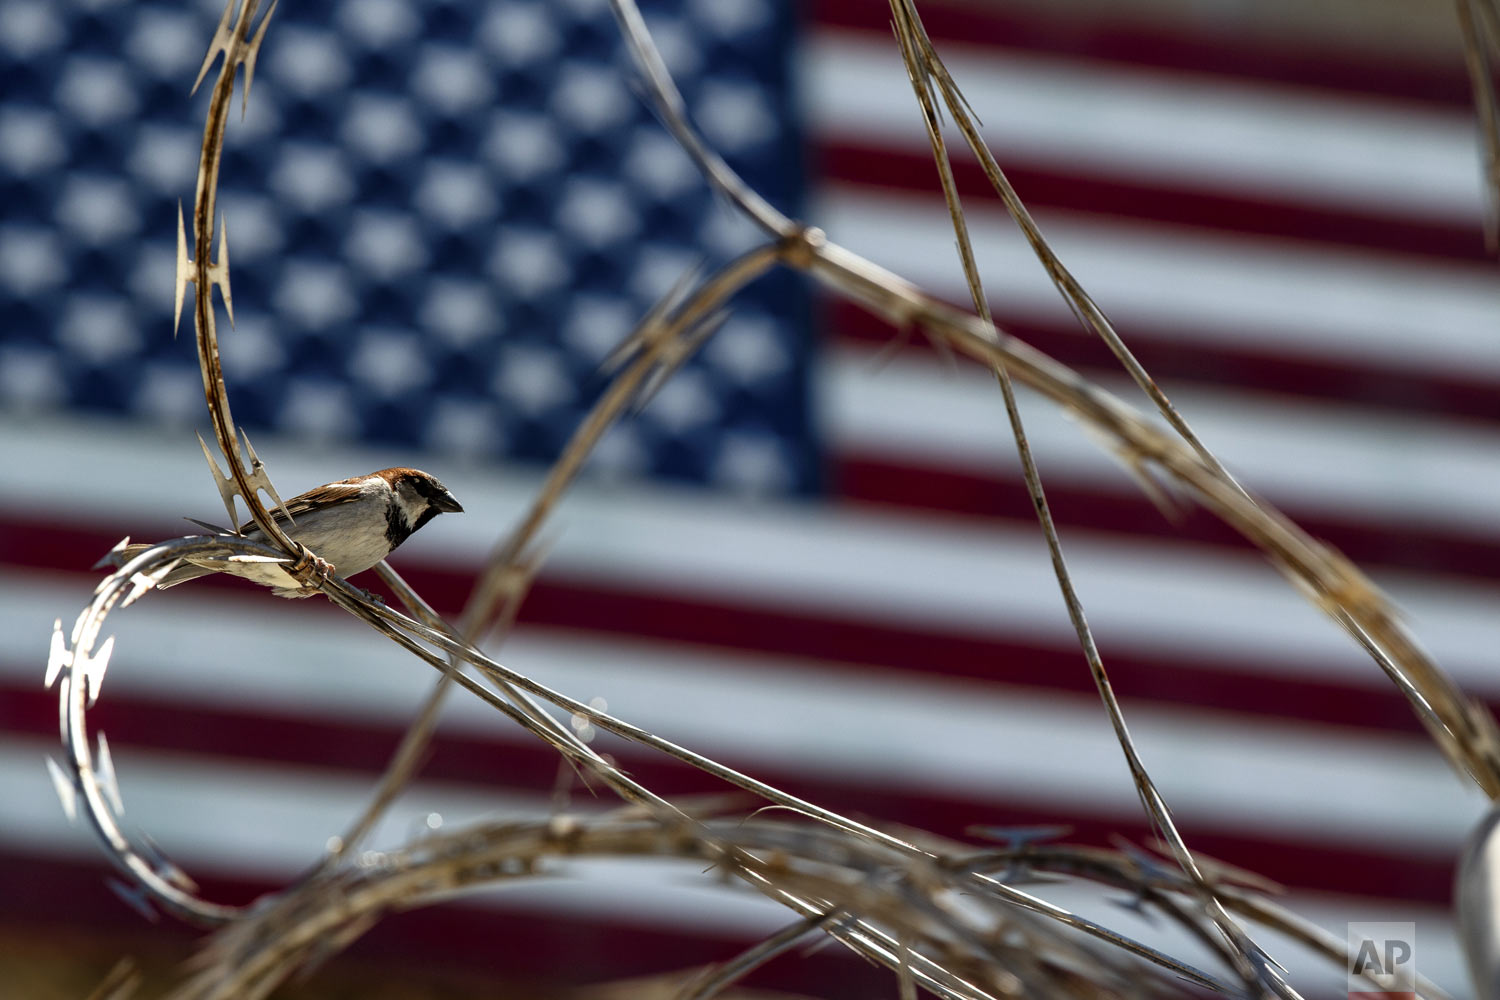 In this photo reviewed by U.S. military officials, a sparrow sits on razor wire at the Camp VI detention facility in Guantanamo Bay Naval Base, Cuba, on Wednesday, April 17, 2019. (AP Photo/Alex Brandon)